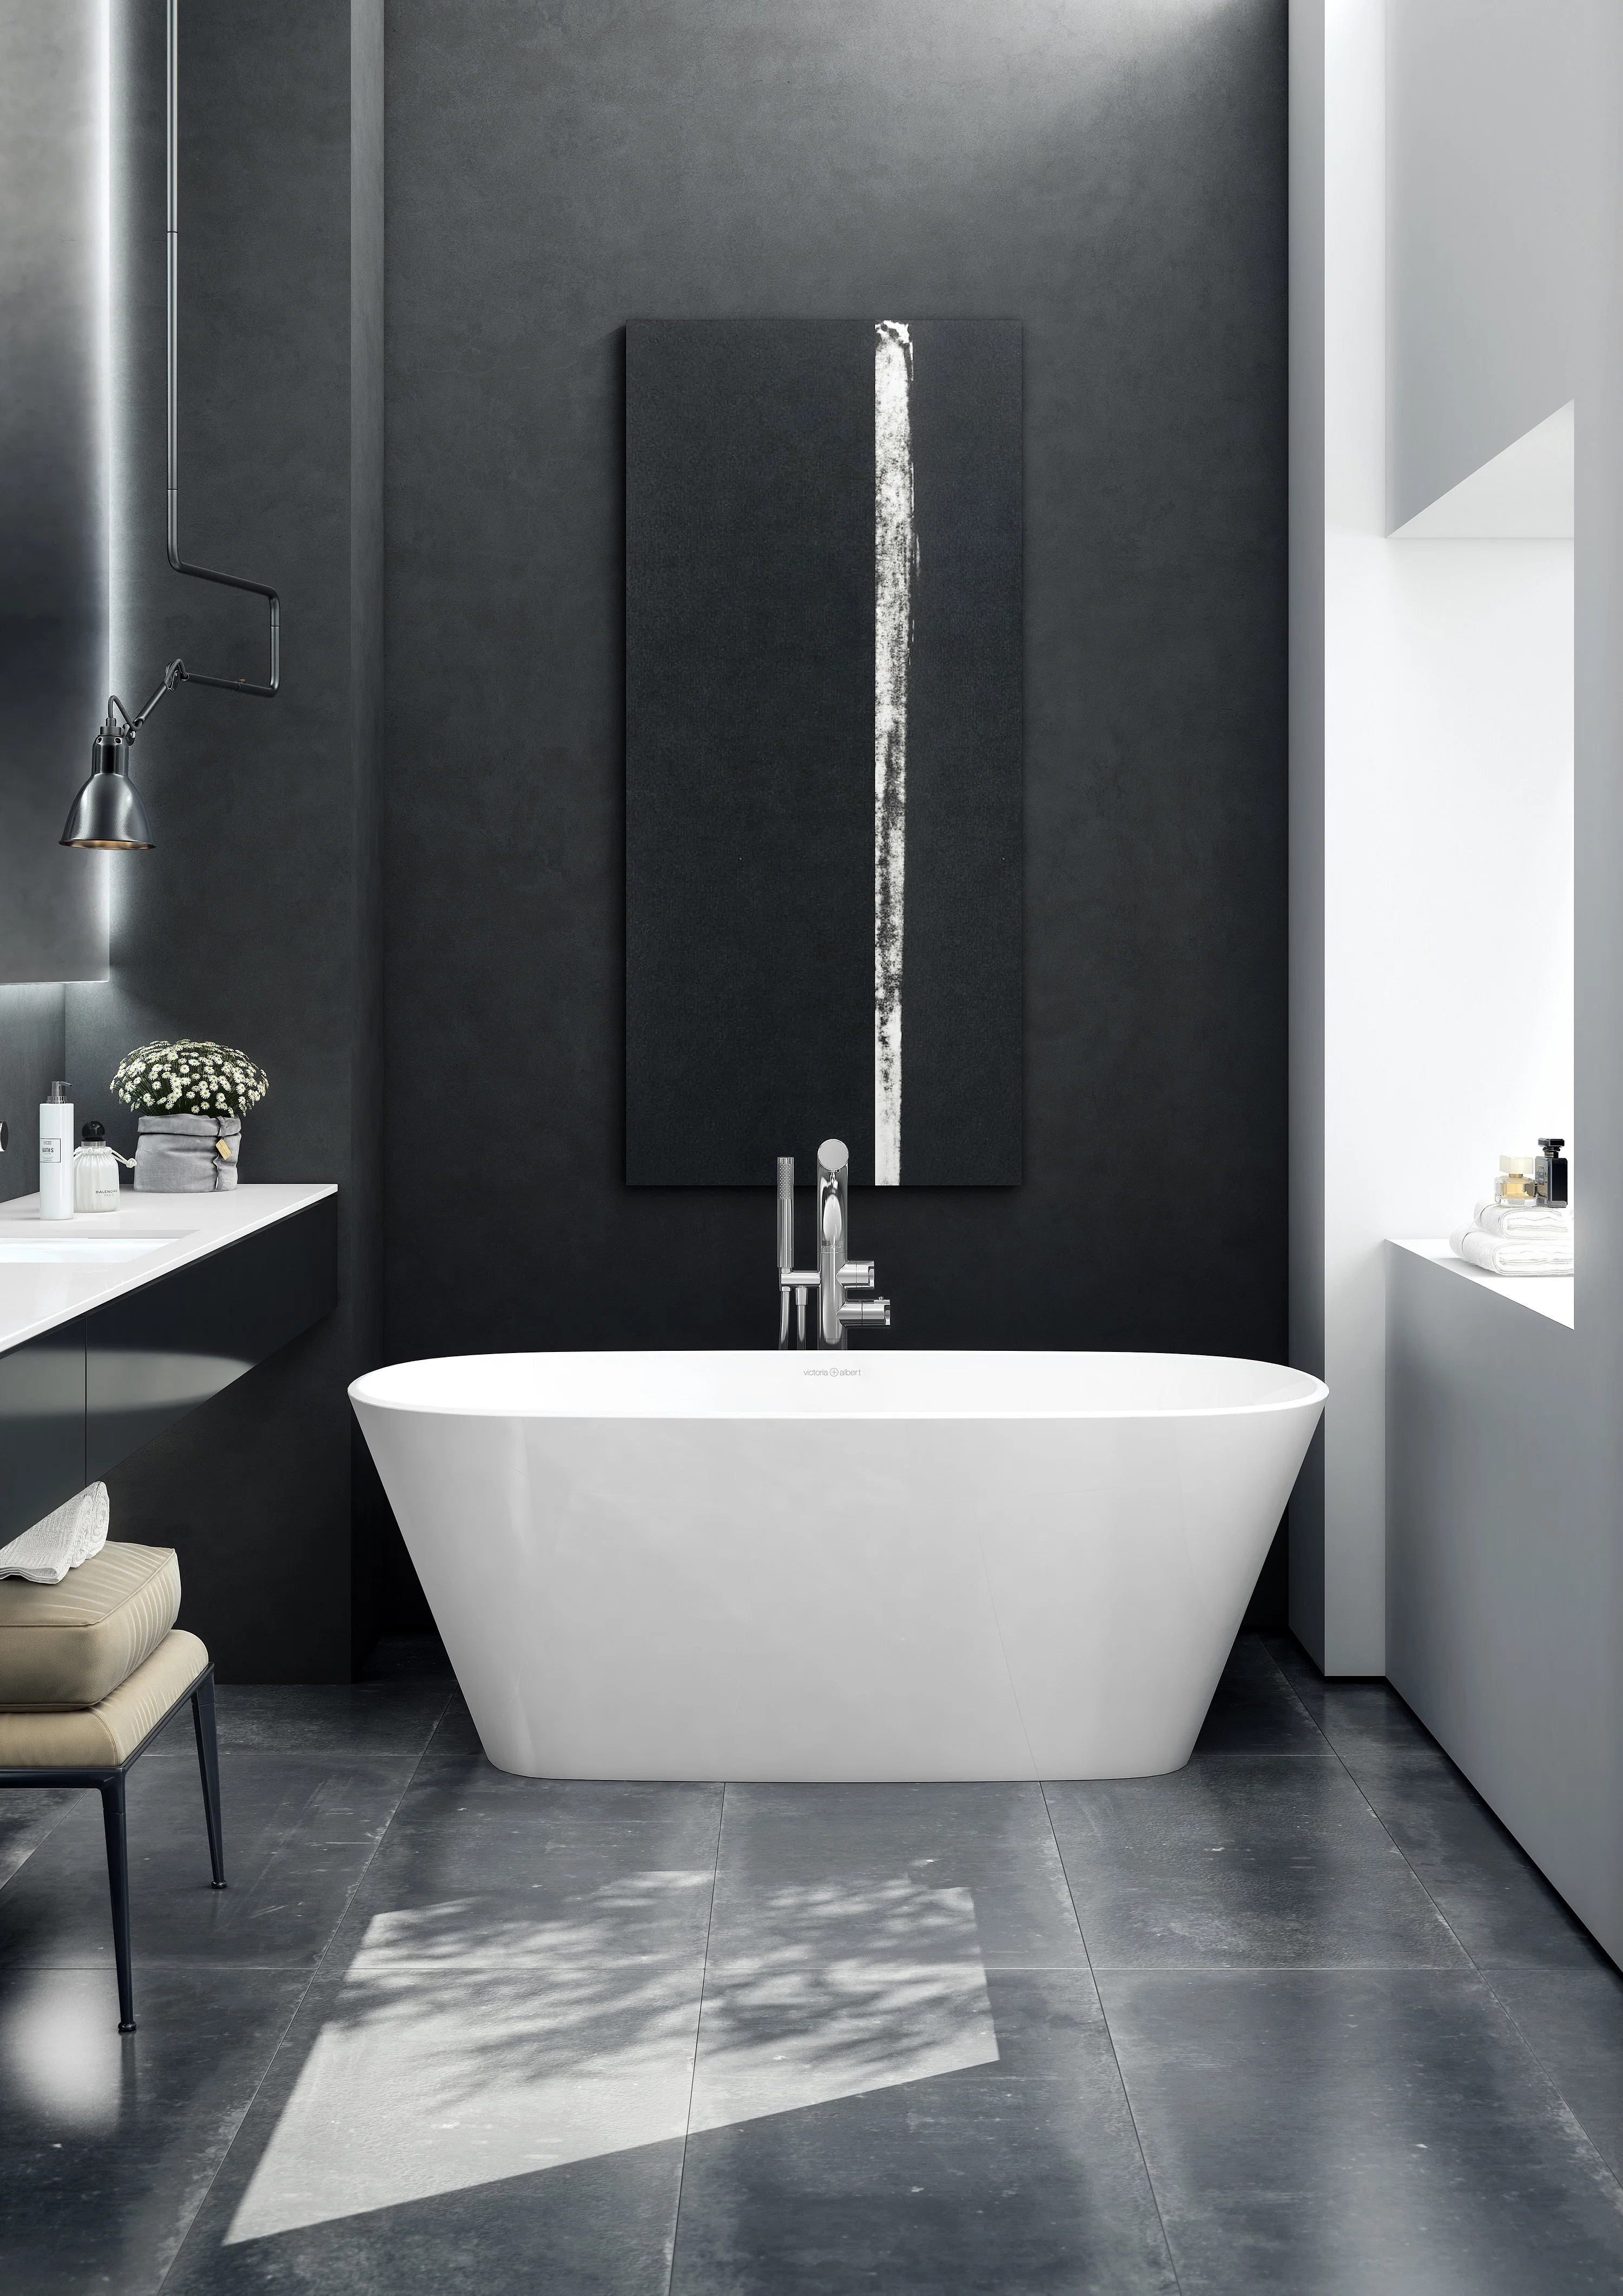 Bathroom design ideas: The right fittings for a small ... on Space Bathroom  id=14245